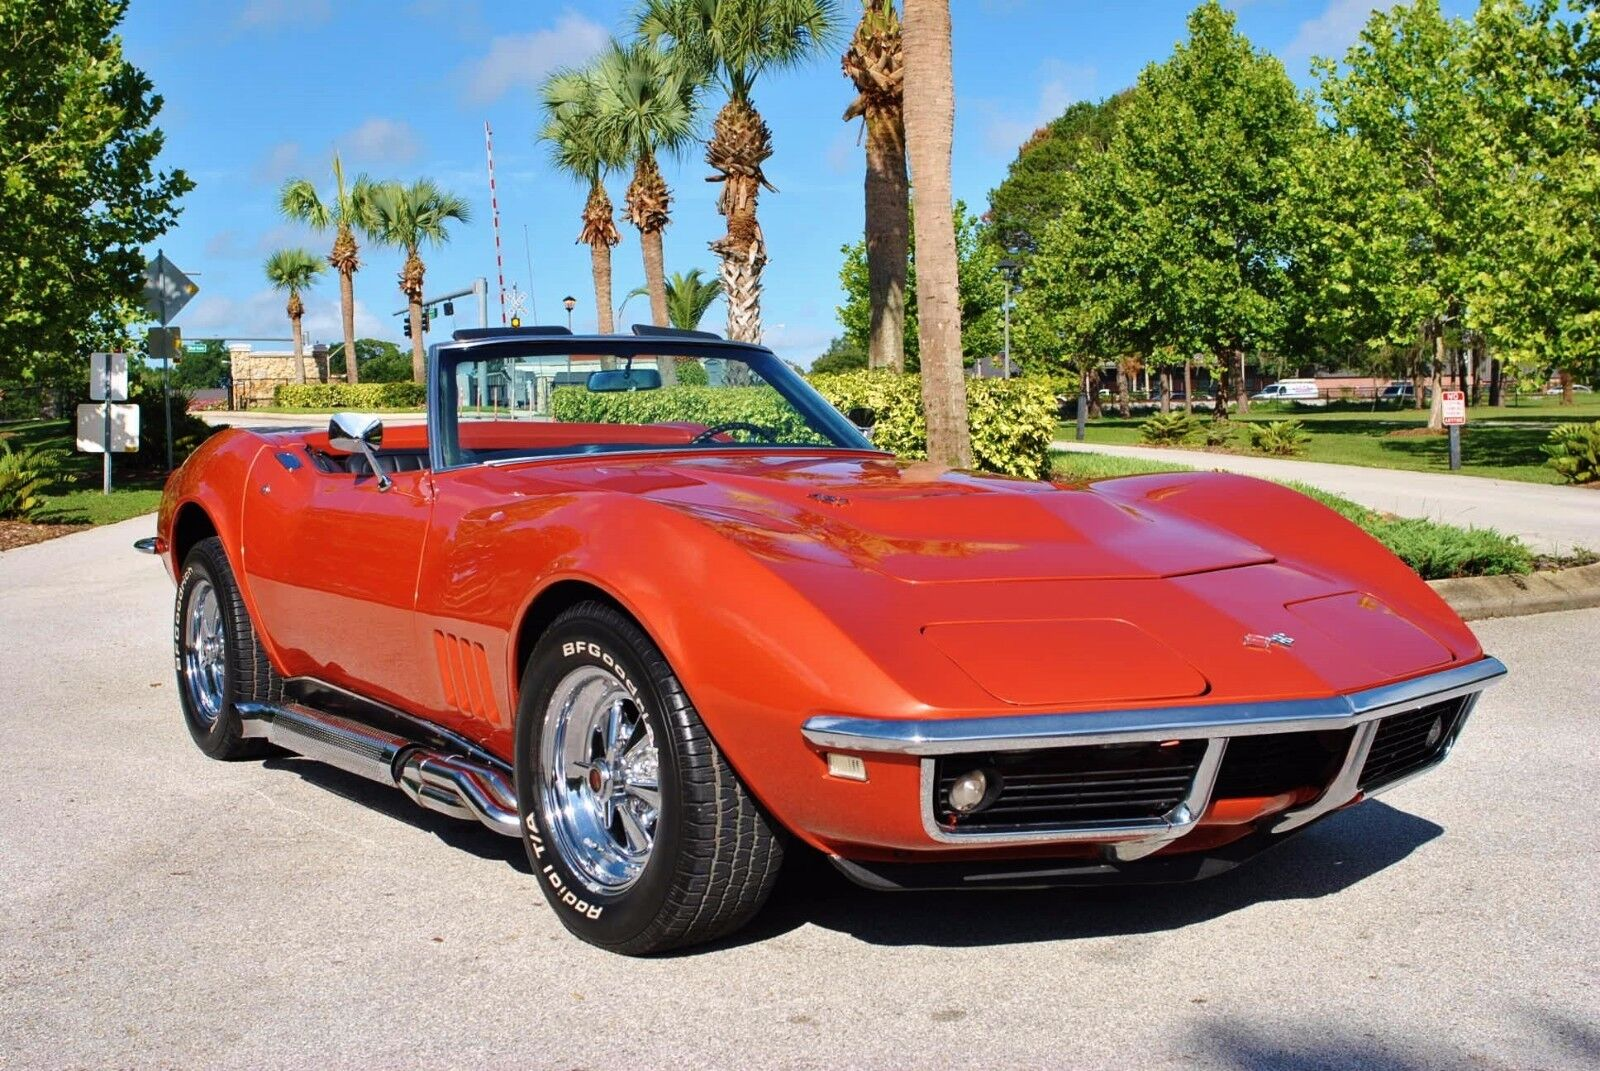 1968 Chevrolet Corvette Convertible 427 V8 Numbers Matching Fully Restored Power Steering Power Disc Brakes Factory Bronze Color Automatic Transmission